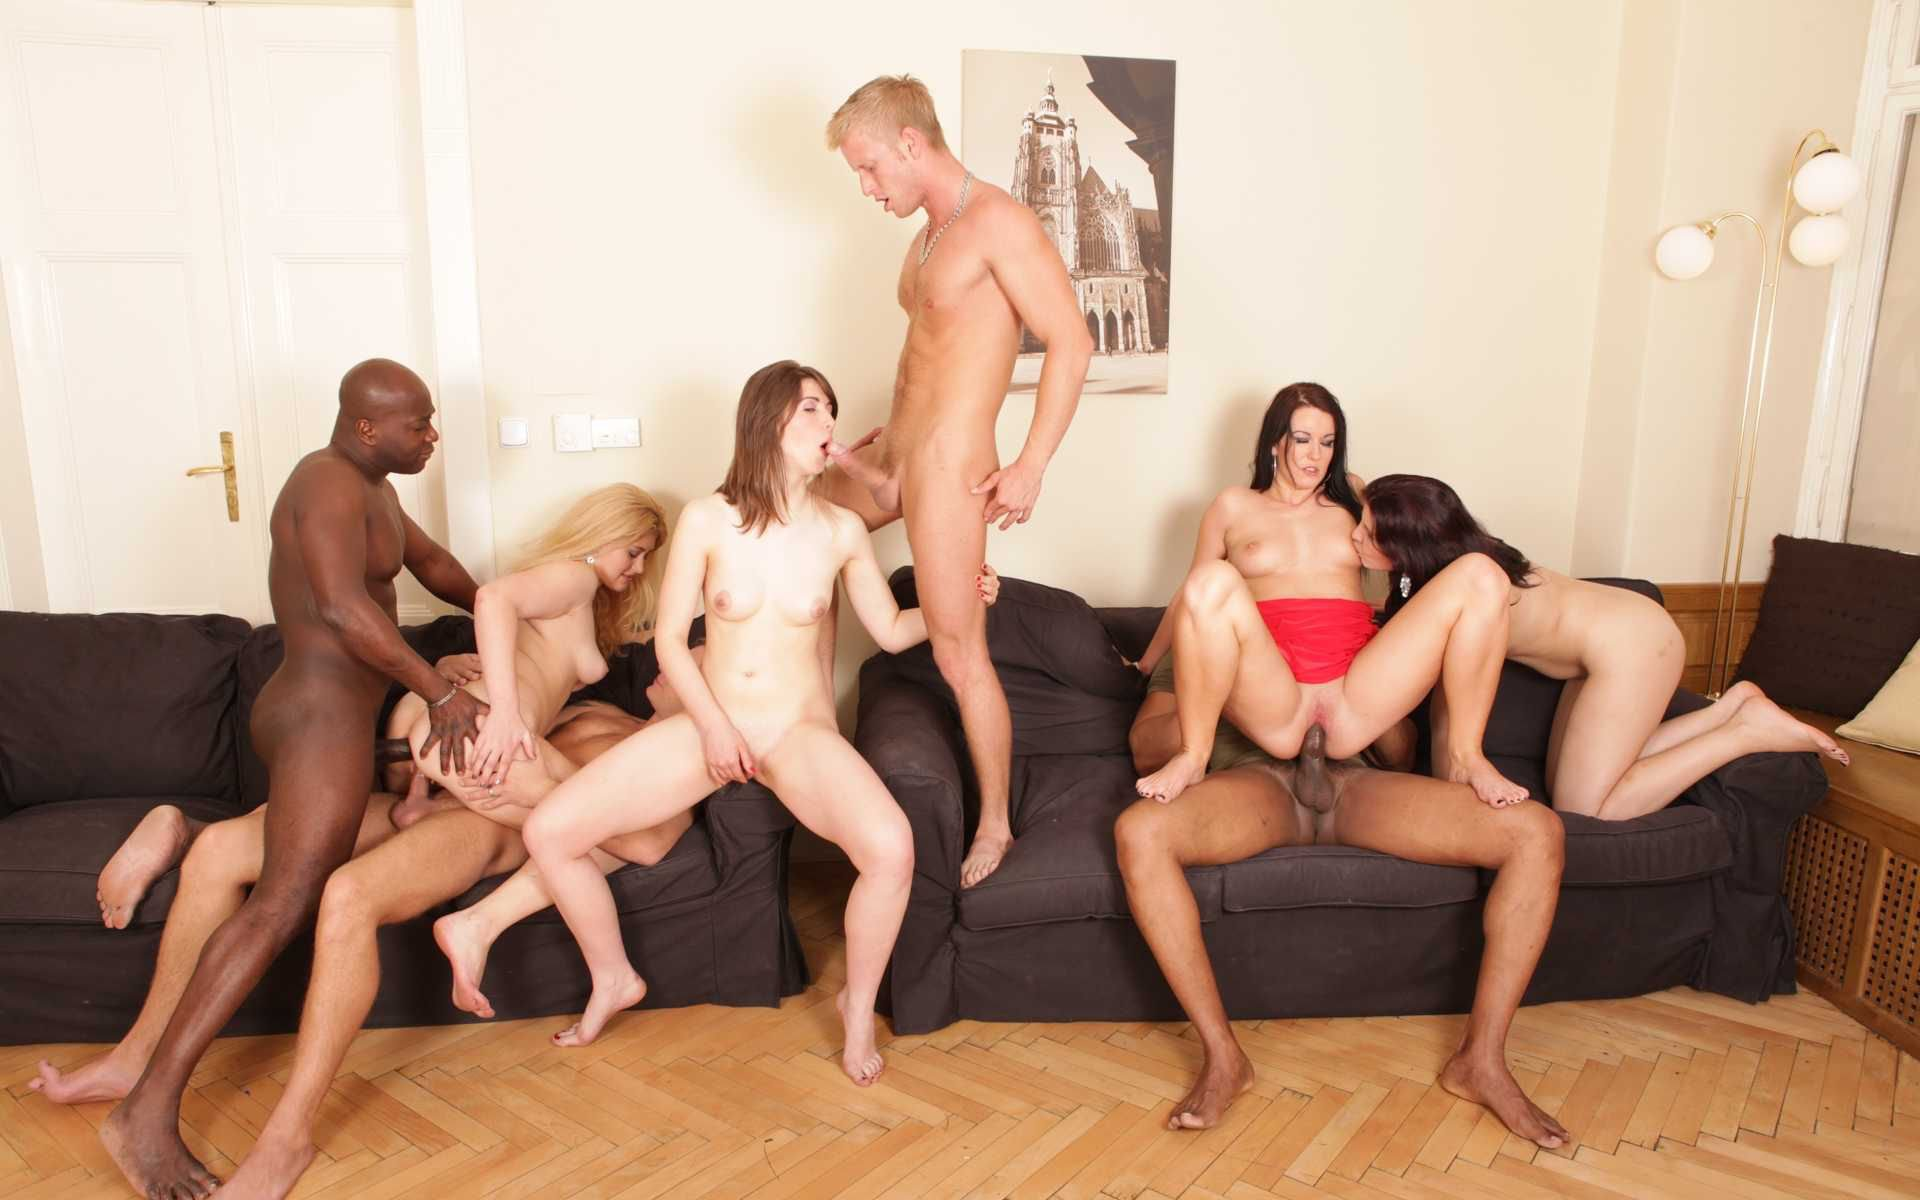 Real cheating girlfriends porn #1